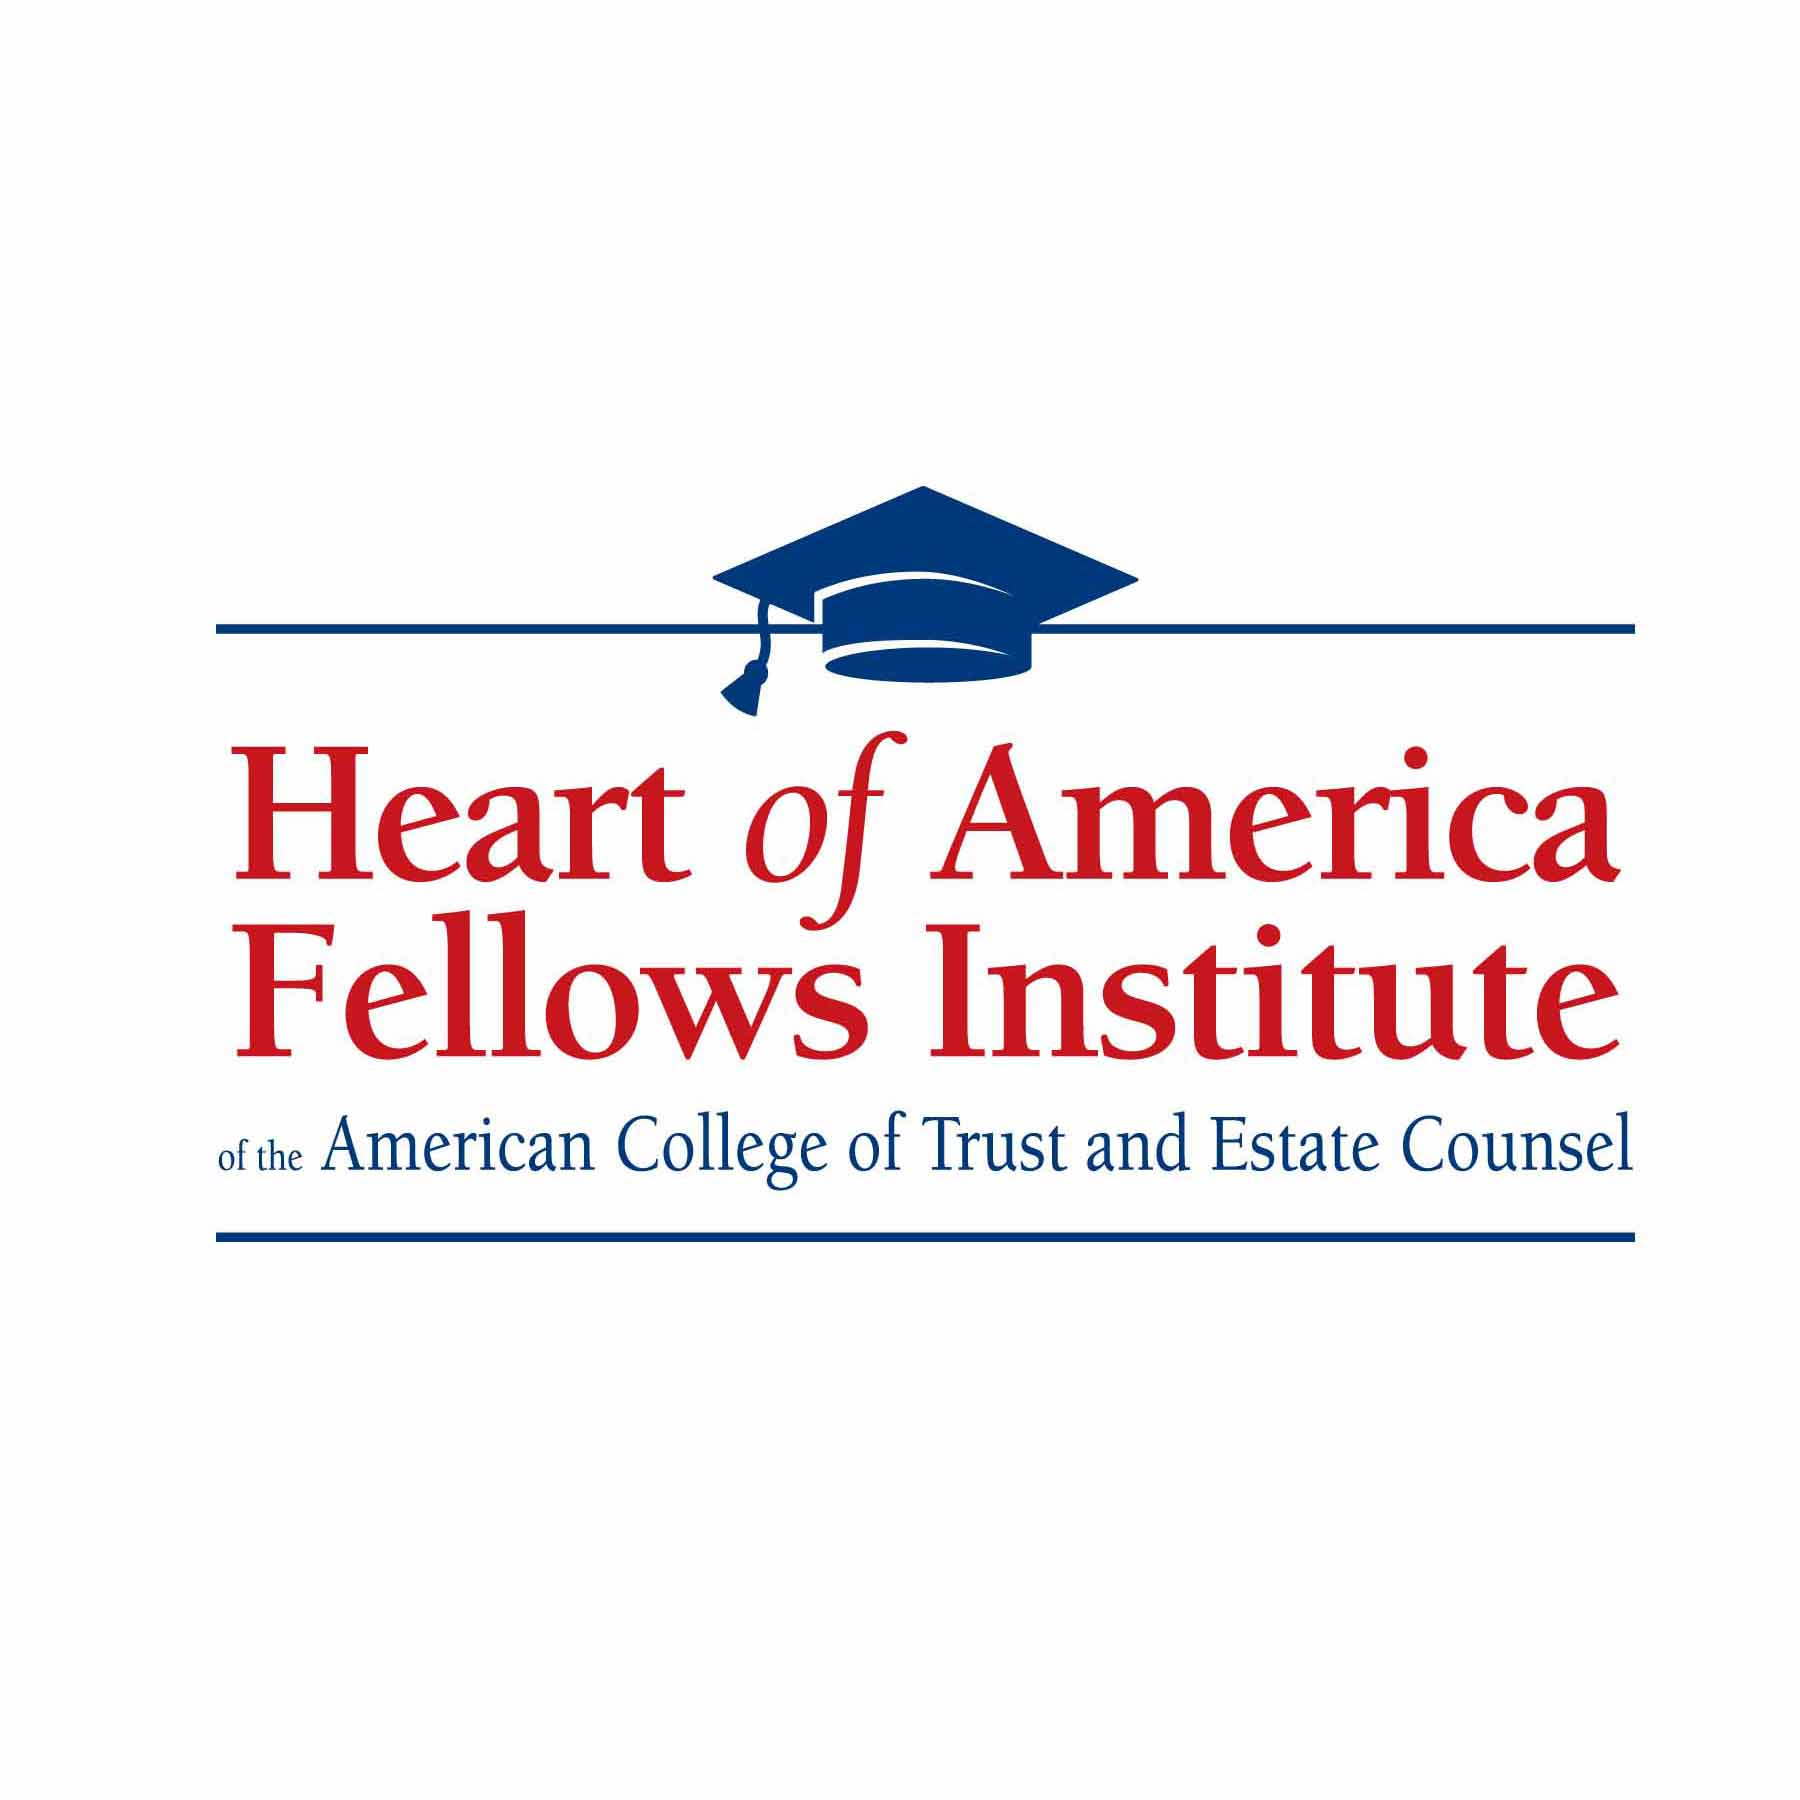 Heart of America Fellows Institute